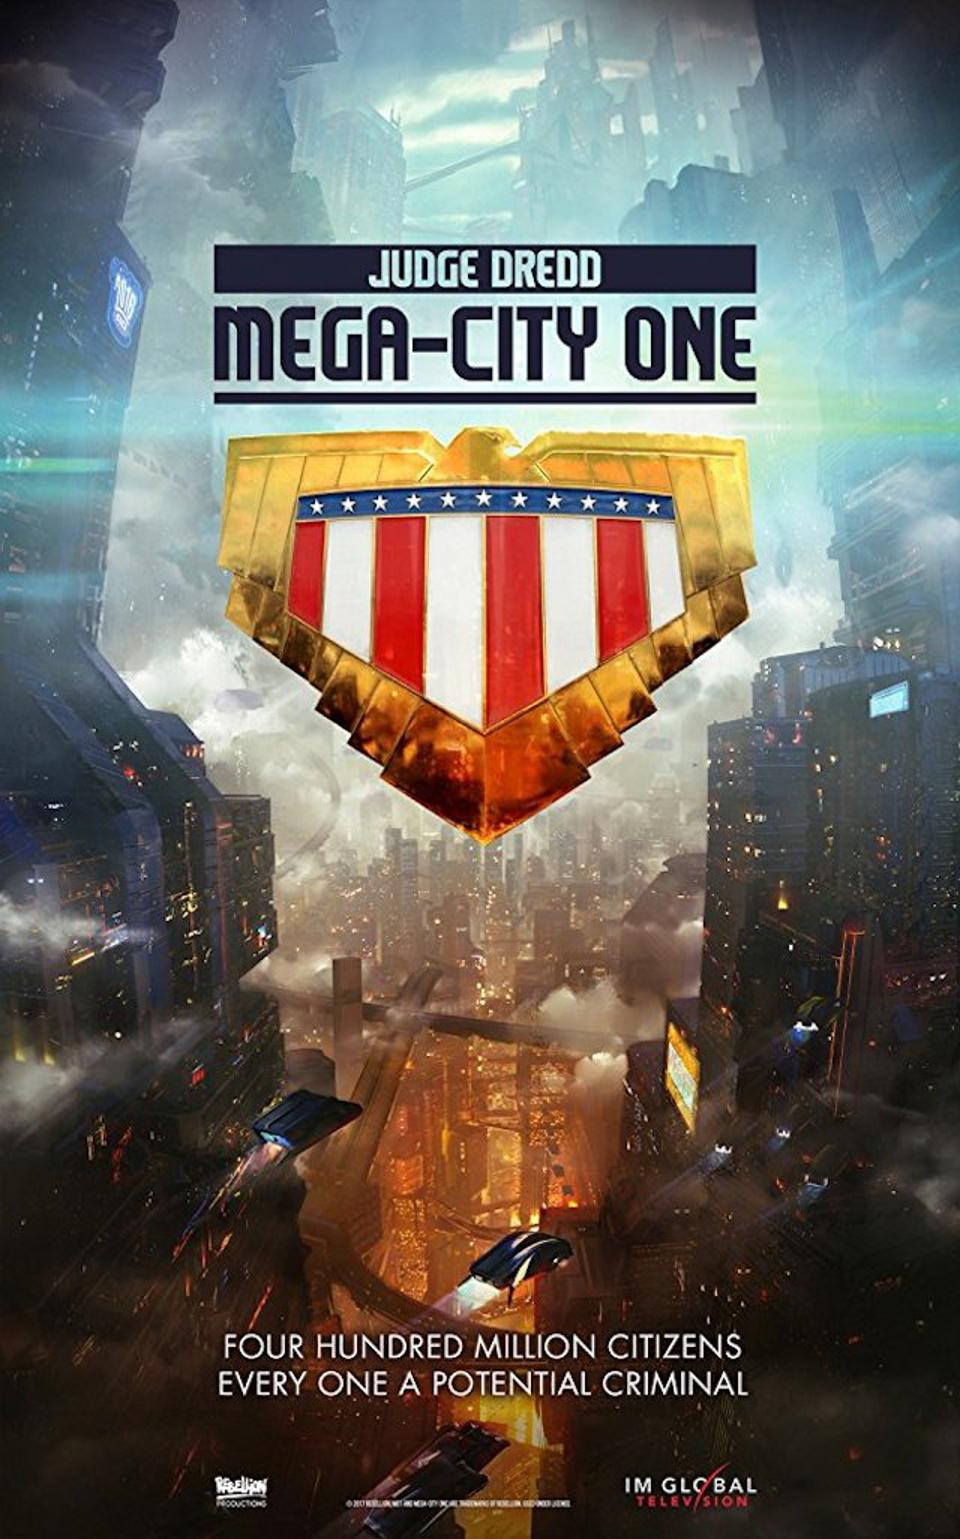 Rebellion's first production, Mega City One, has been stuck in production hell, in part due to a lack of U.K. studio space.